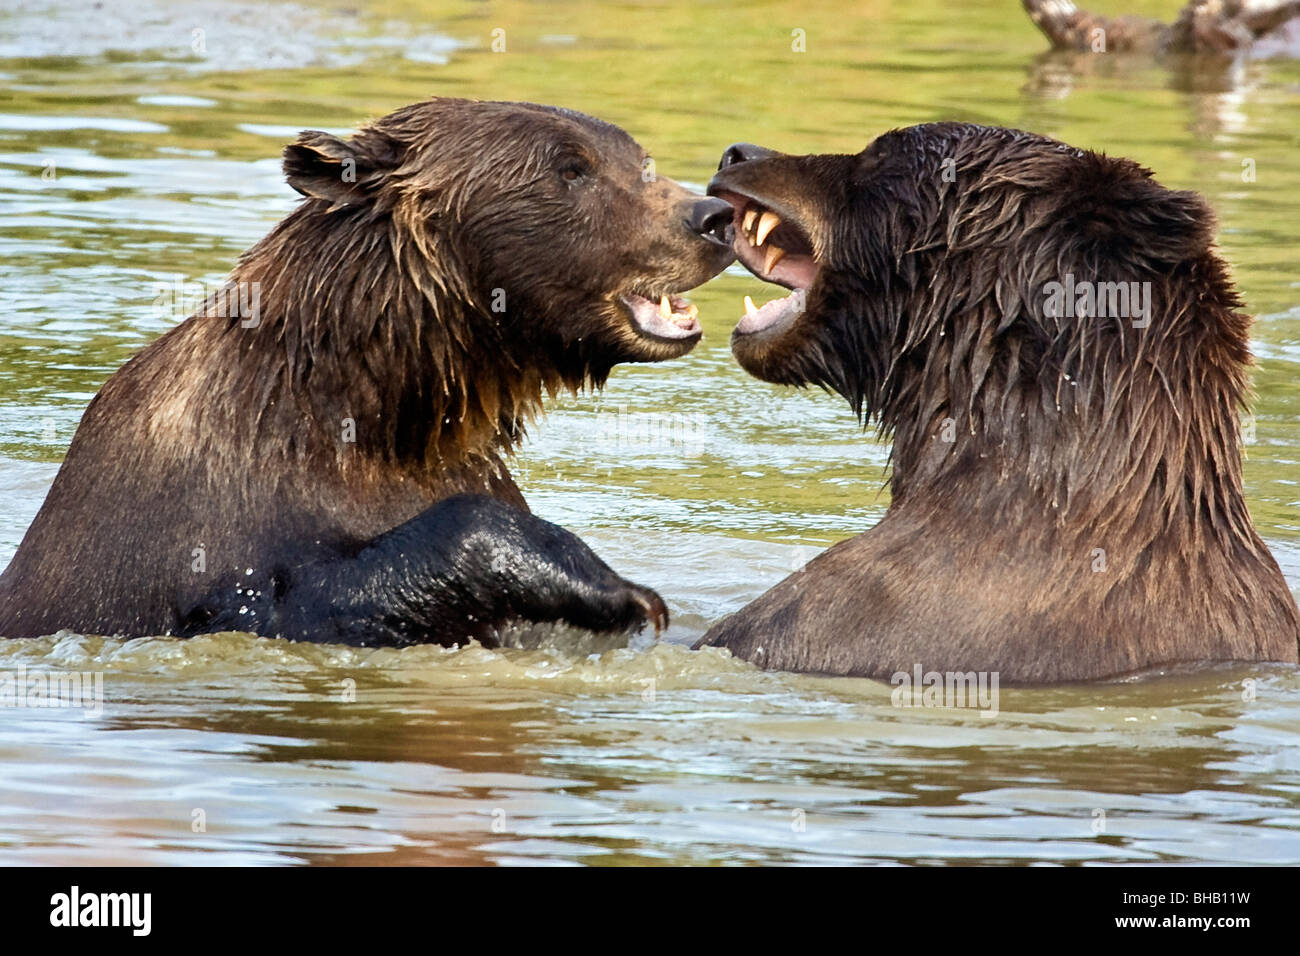 Bears playing at the Alaska Wildlife Conservation Center, Southcentral Alaska - Stock Image